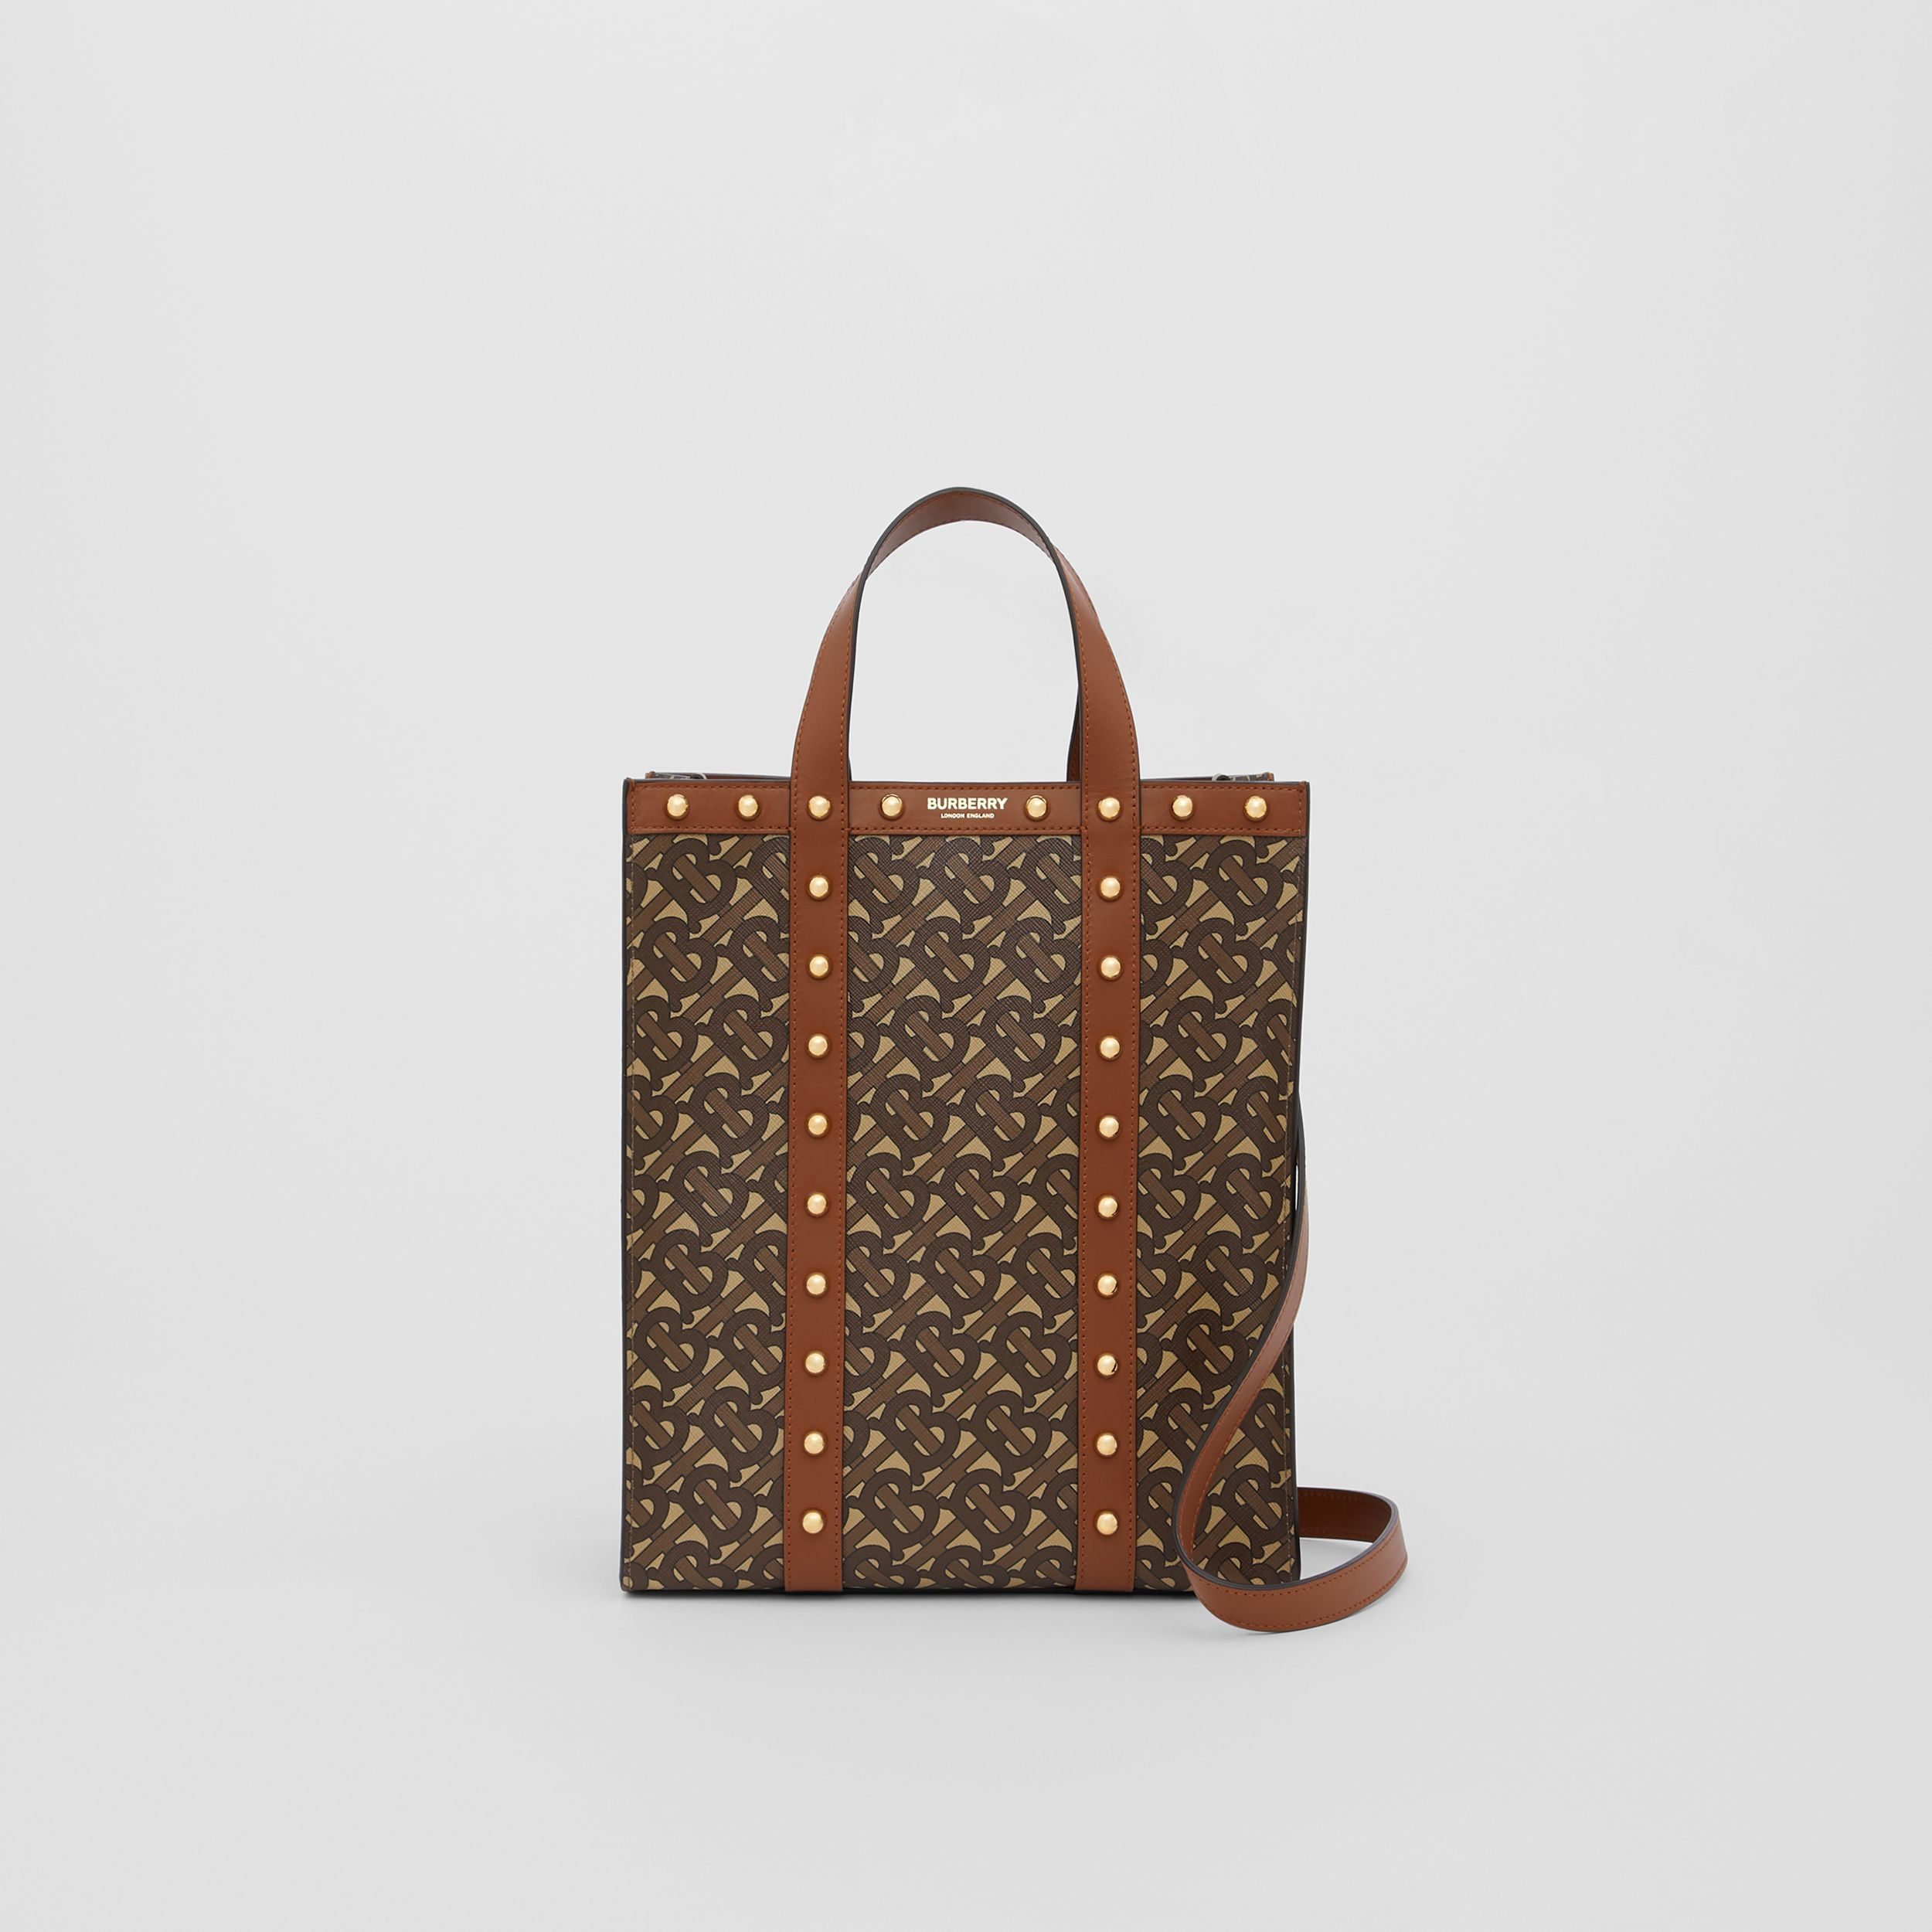 Small Monogram Print E-canvas Portrait Tote Bag in Tan - Women | Burberry United Kingdom - 1